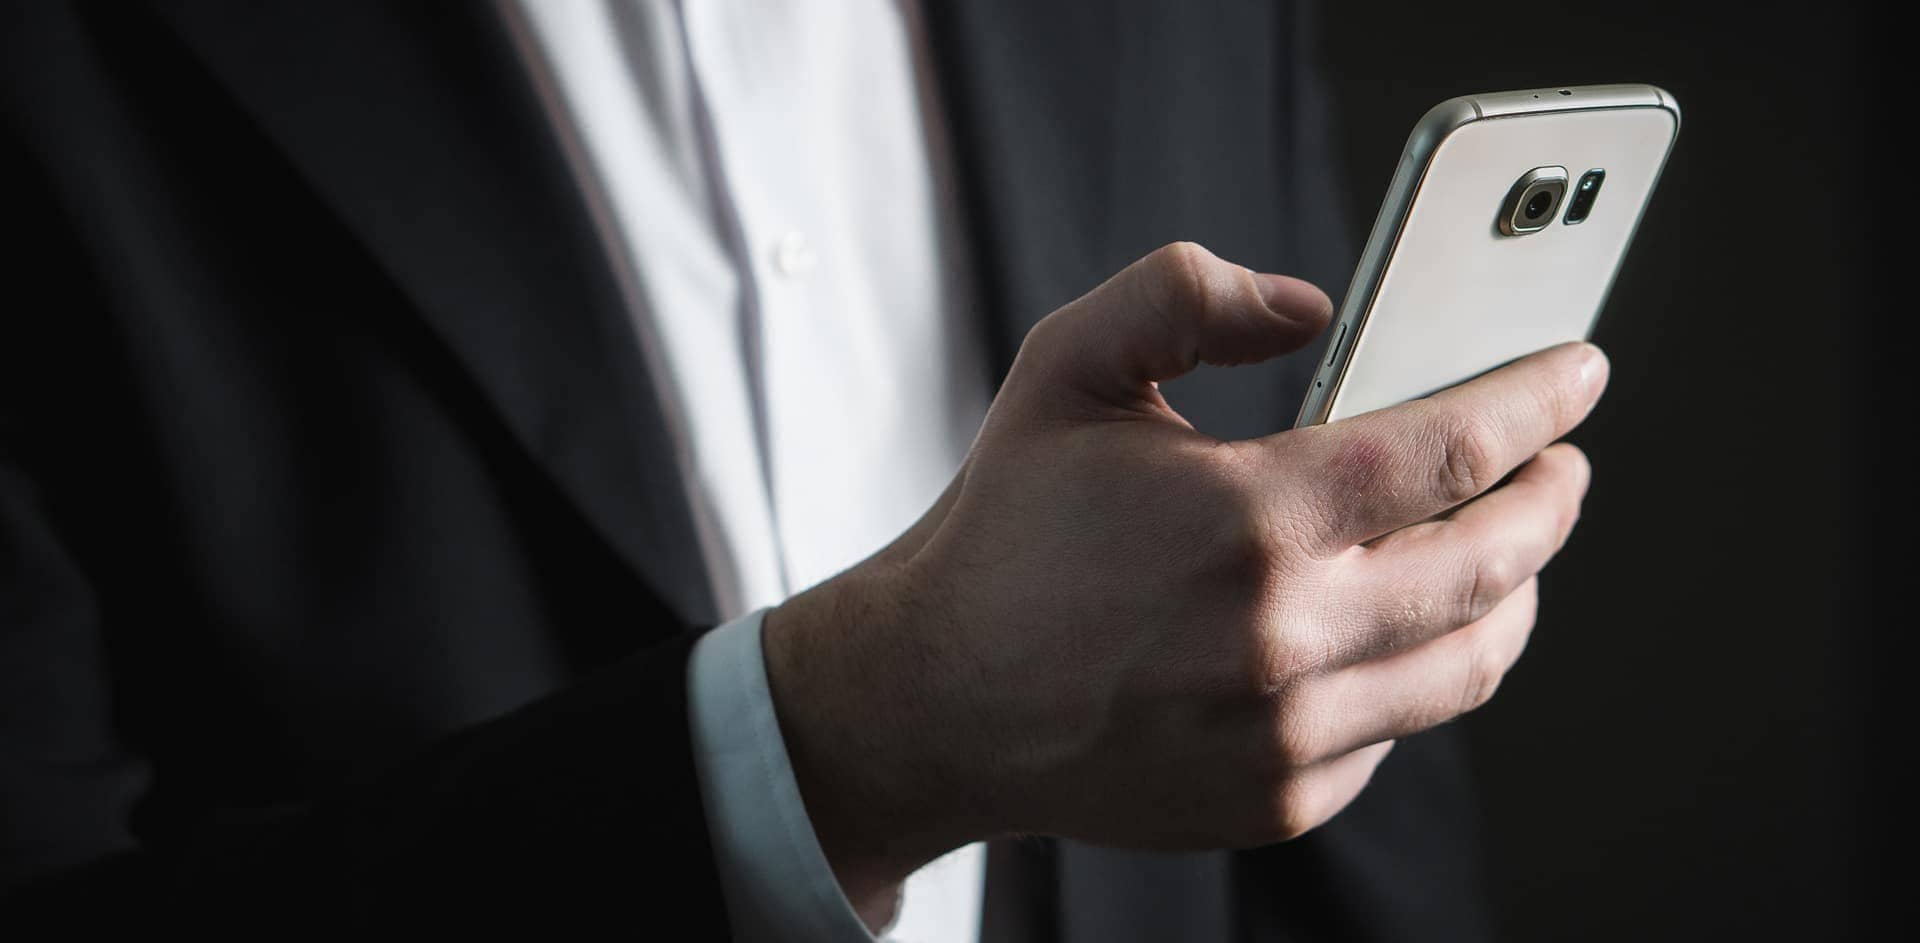 man texting on his mobile phone